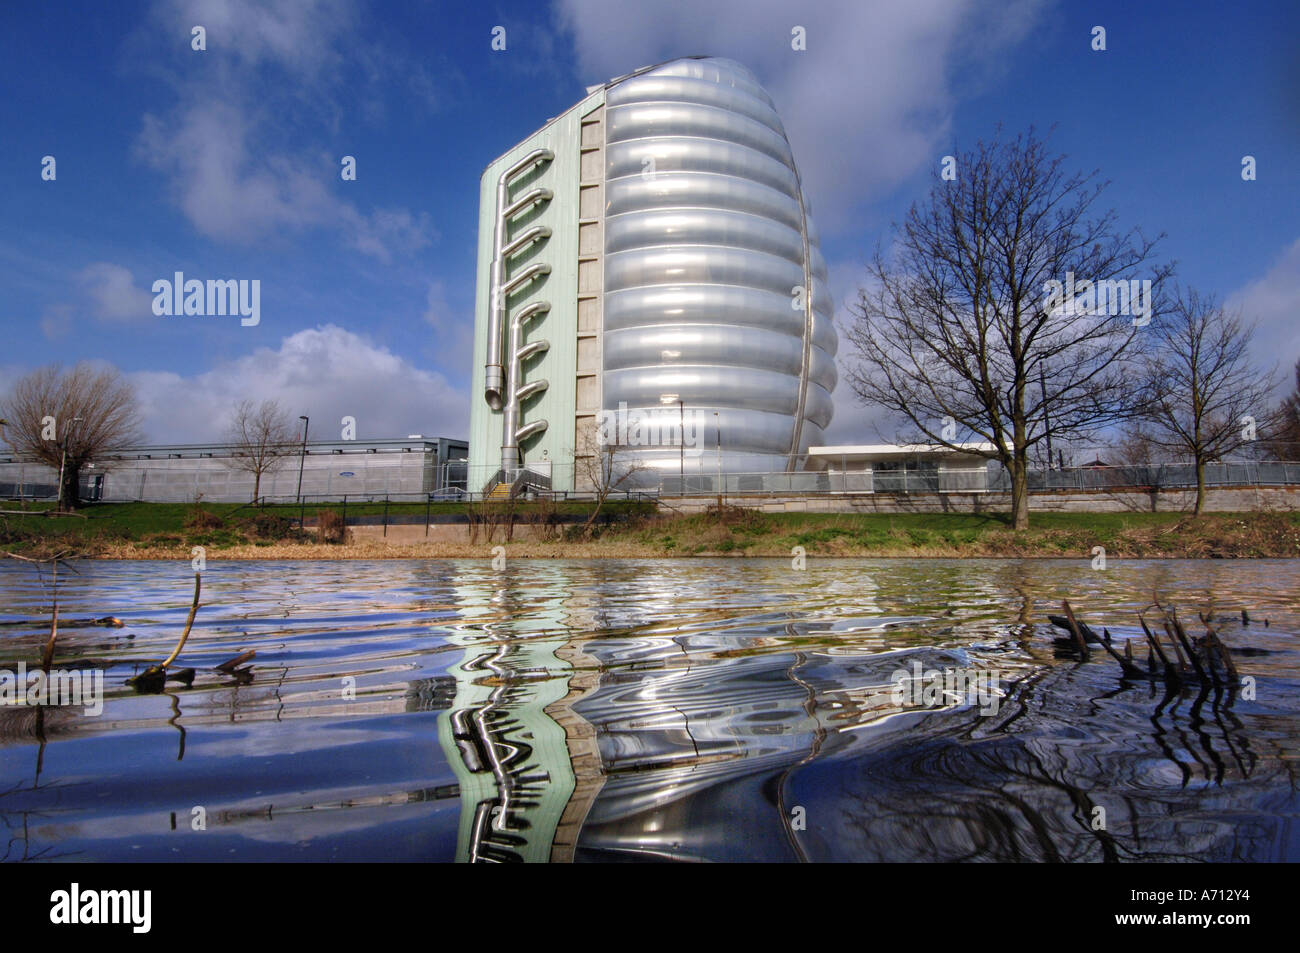 Britains National Space Science Centre on the banks of the River Soar in Leicester - Stock Image